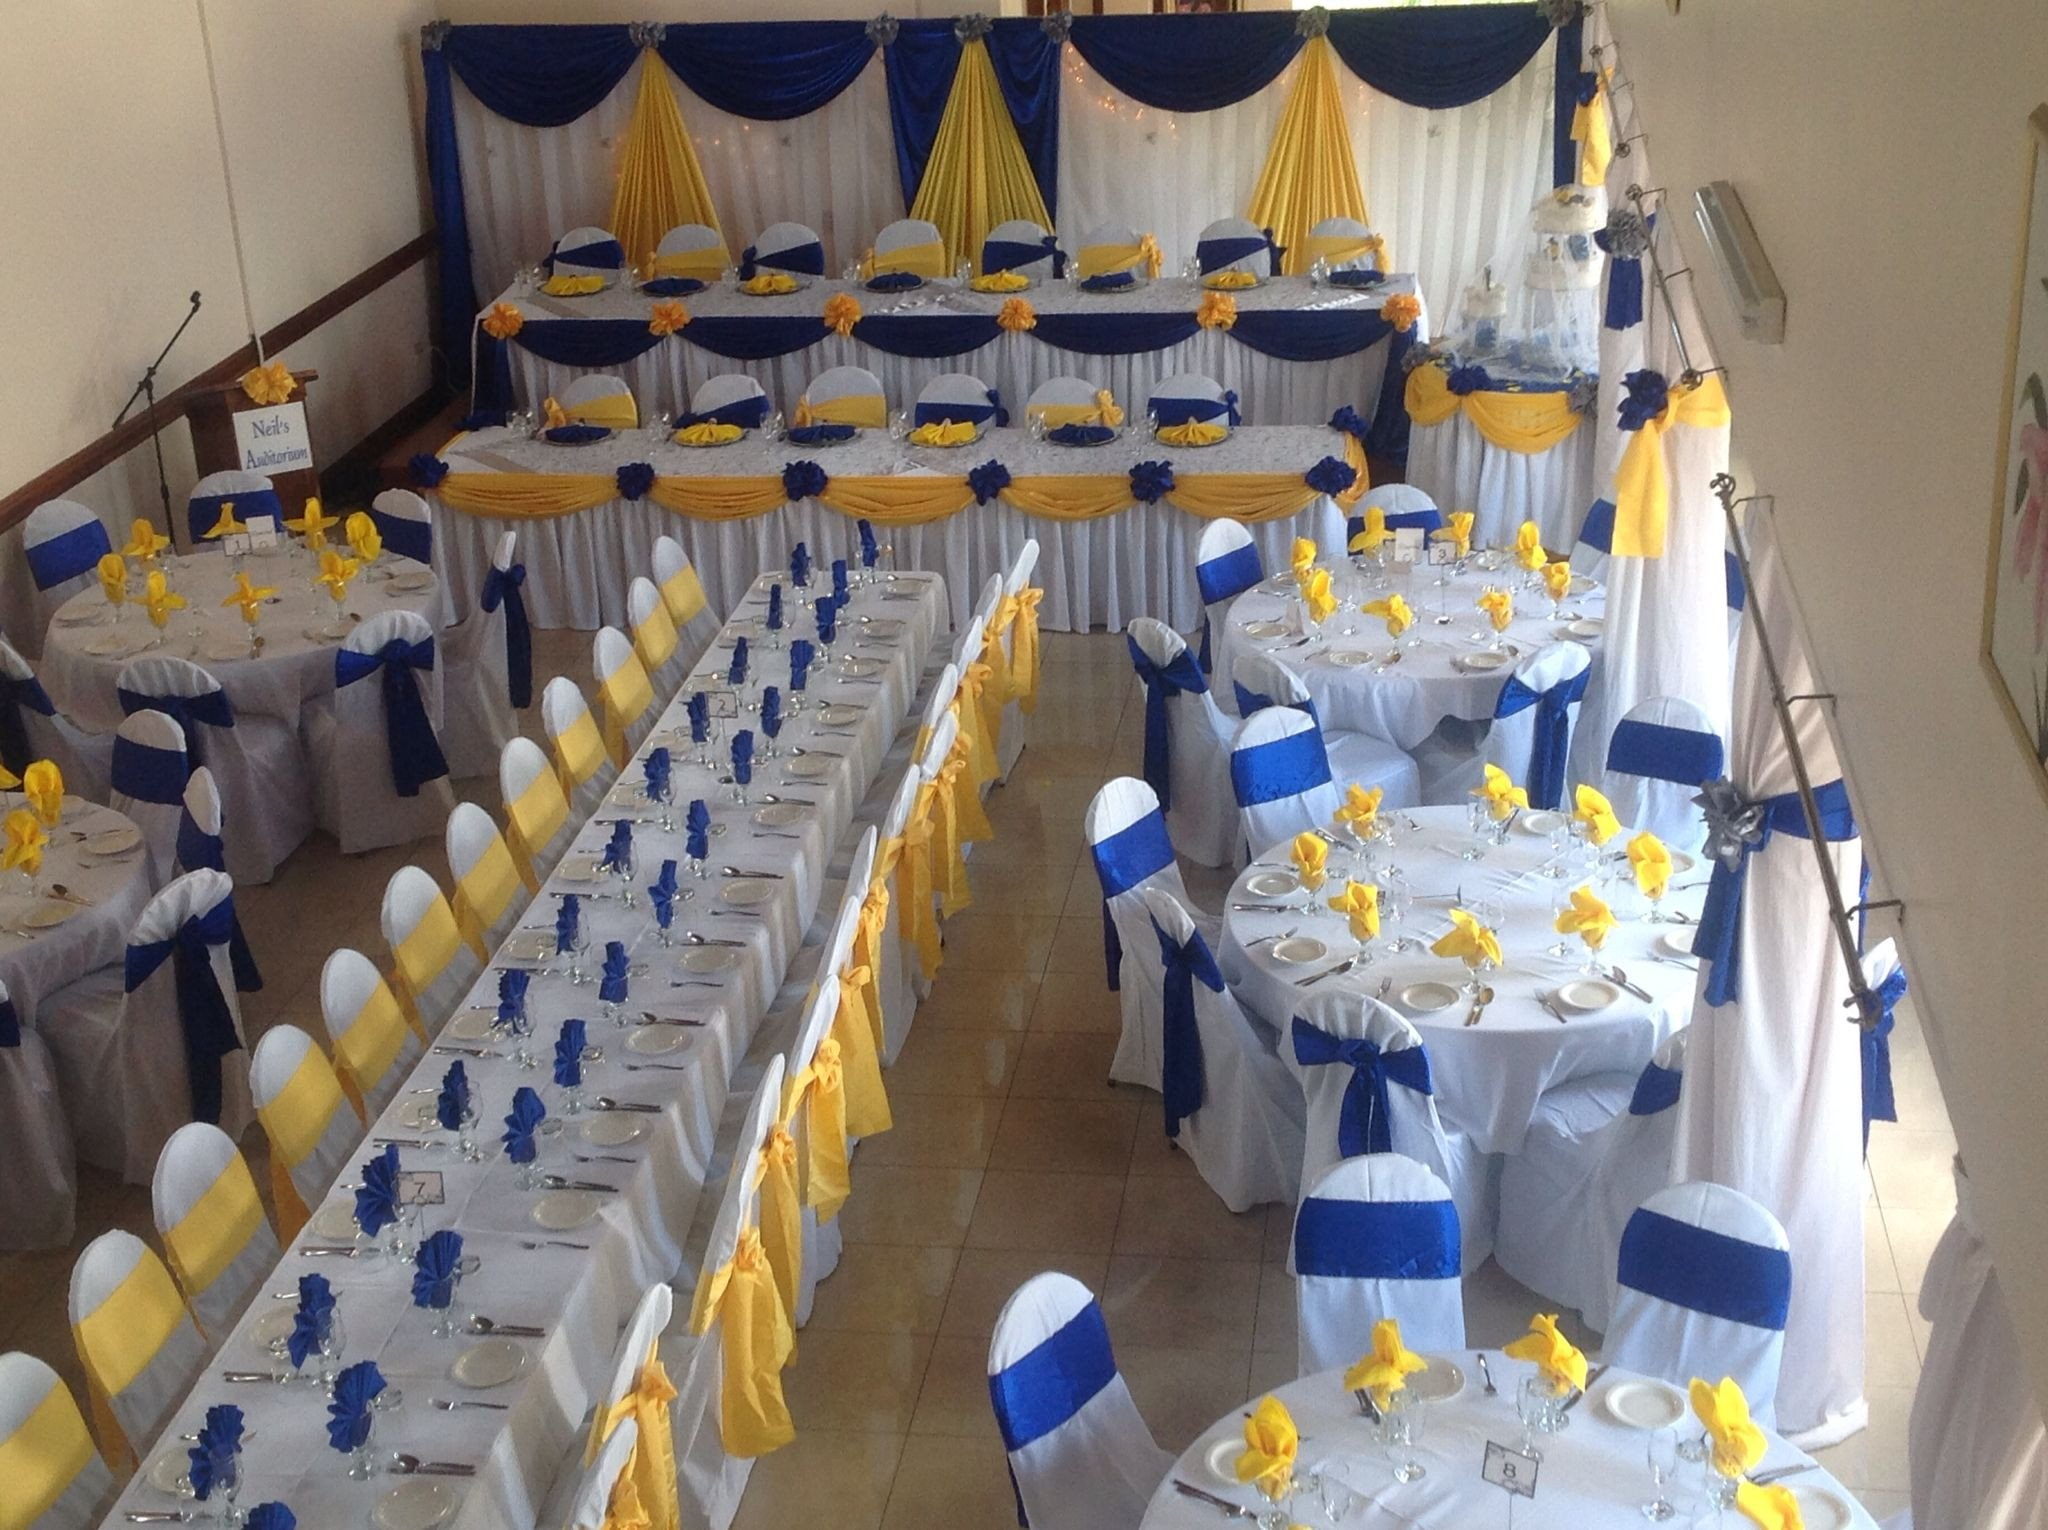 Blue and Yellow Wedding Decor Unique Royal Blue and Yellow Wedding Decor Wedding Decor Pinterest